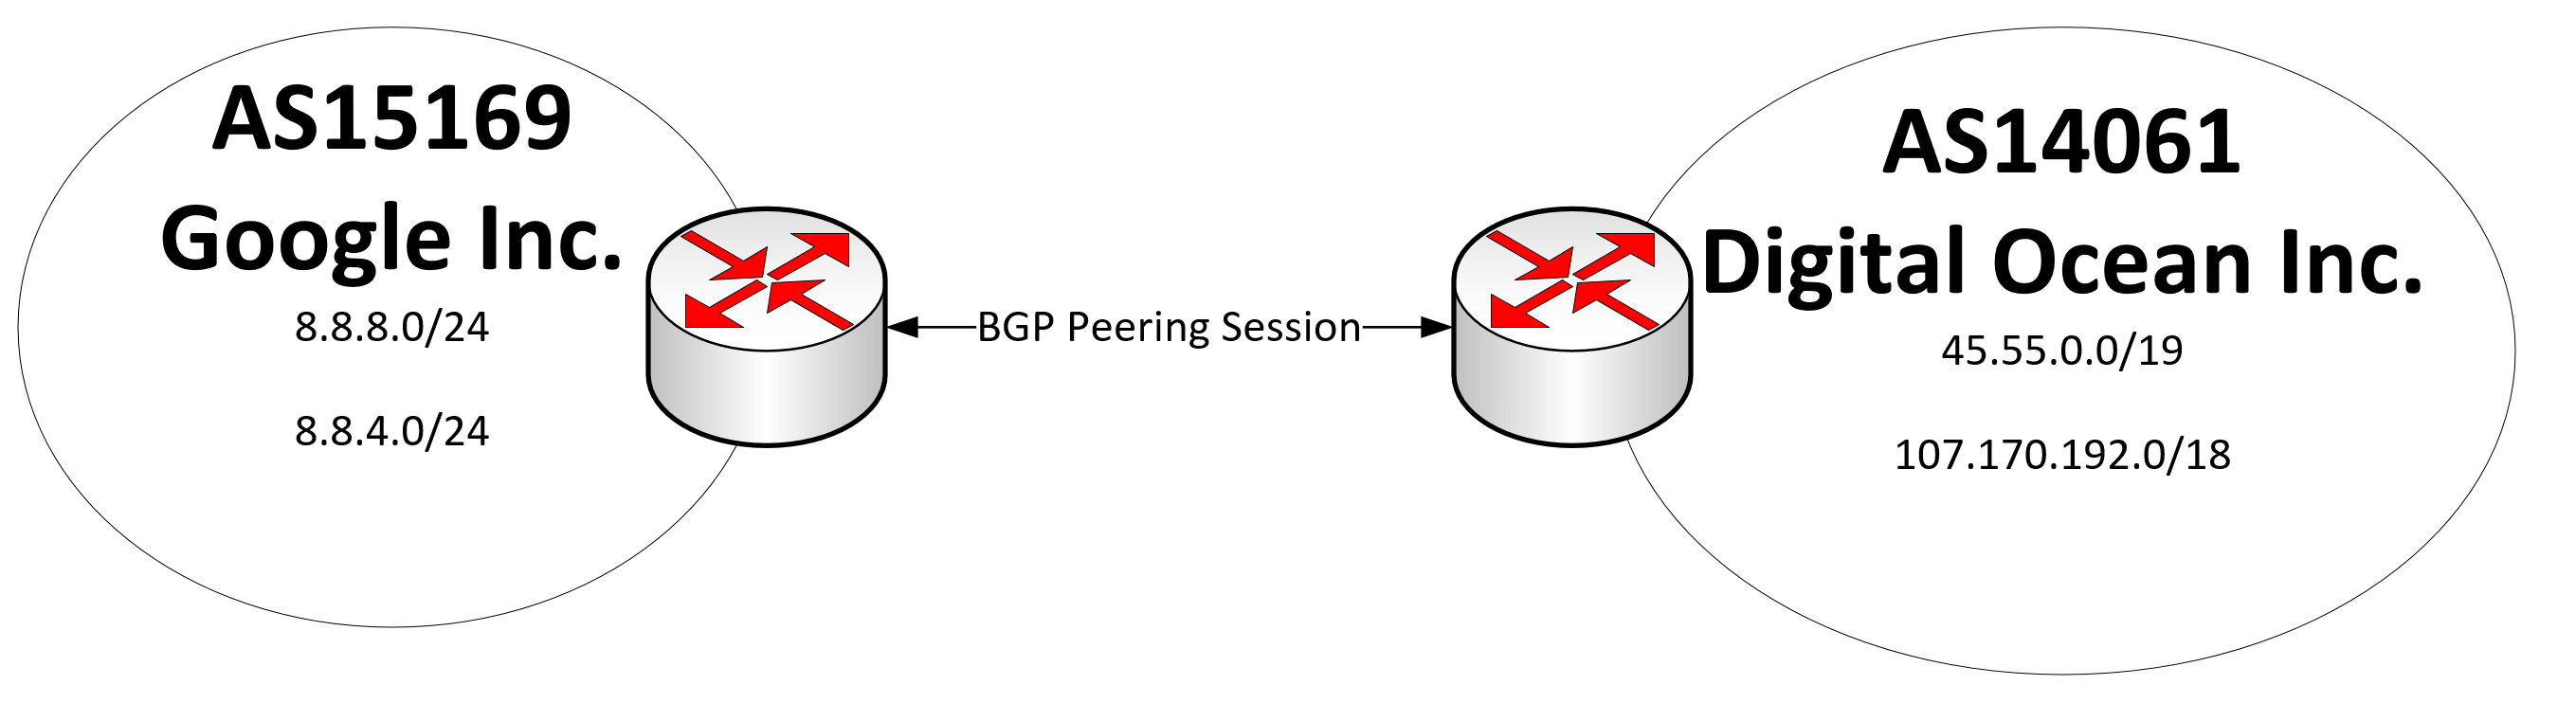 Sample BGP Peering Session Diagram